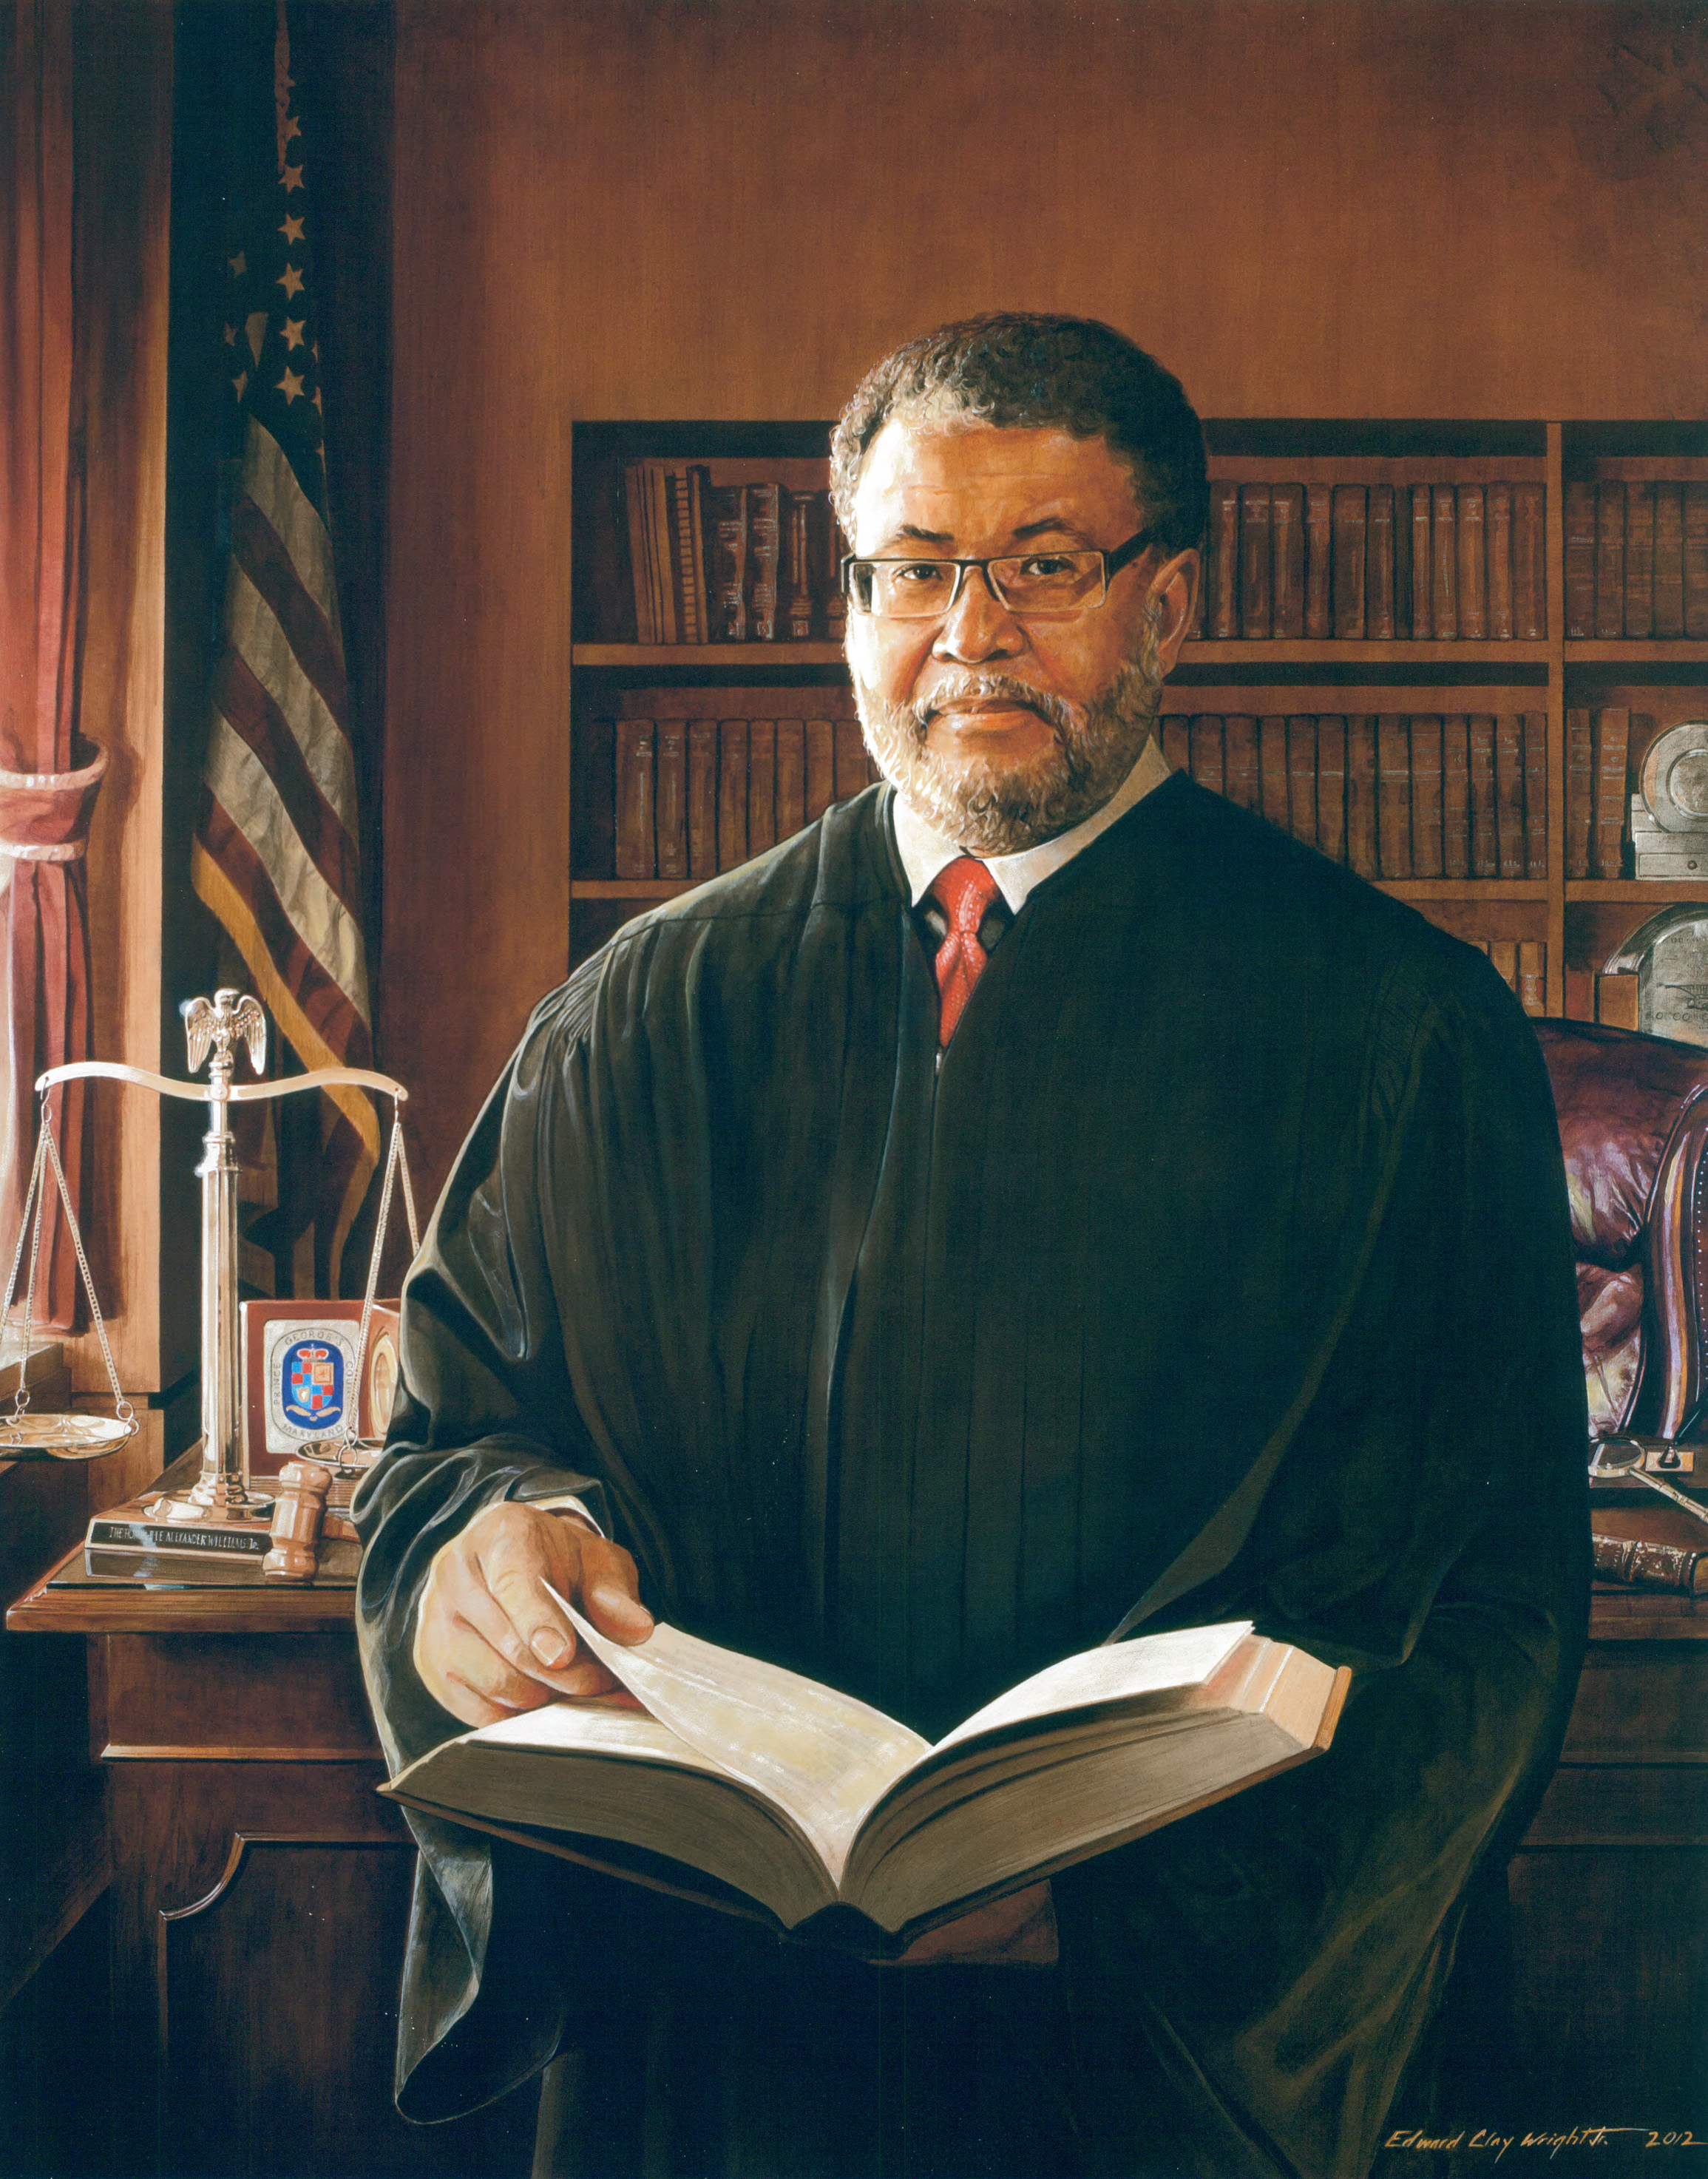 Official portrait of The Honorable Judge Alexander Williams Jr.